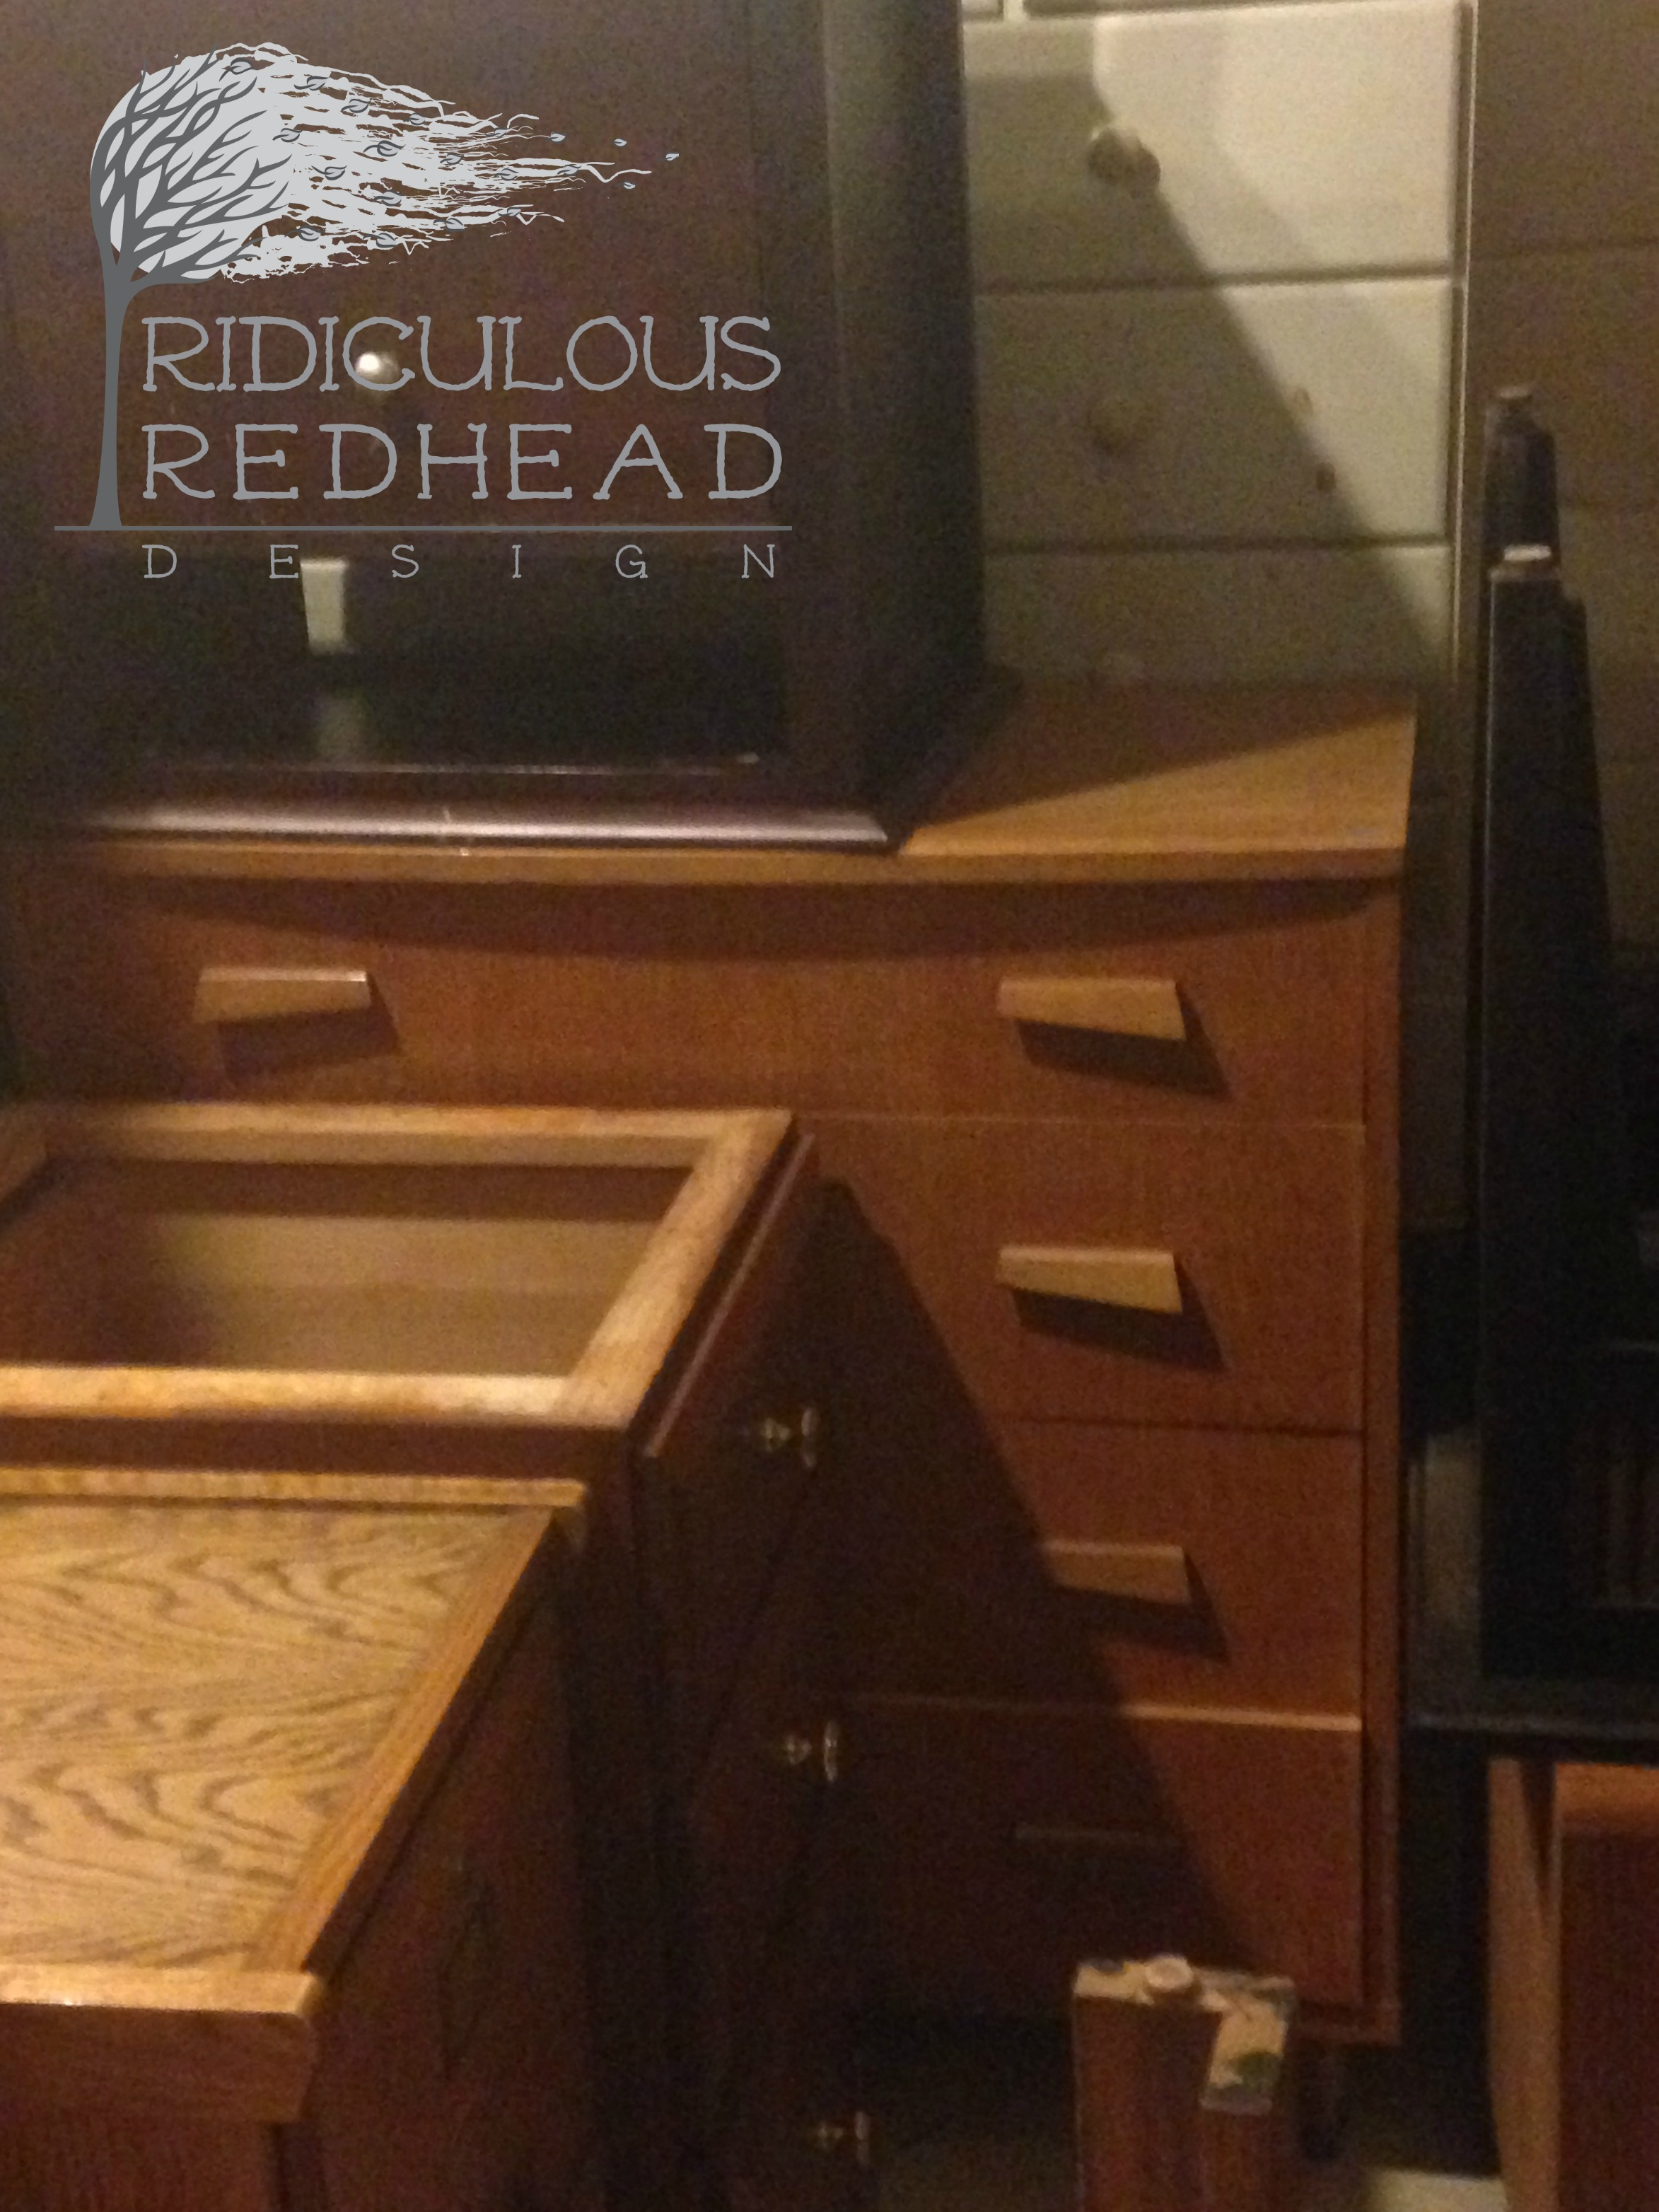 Habitat restore dresser before ridiculous redhead